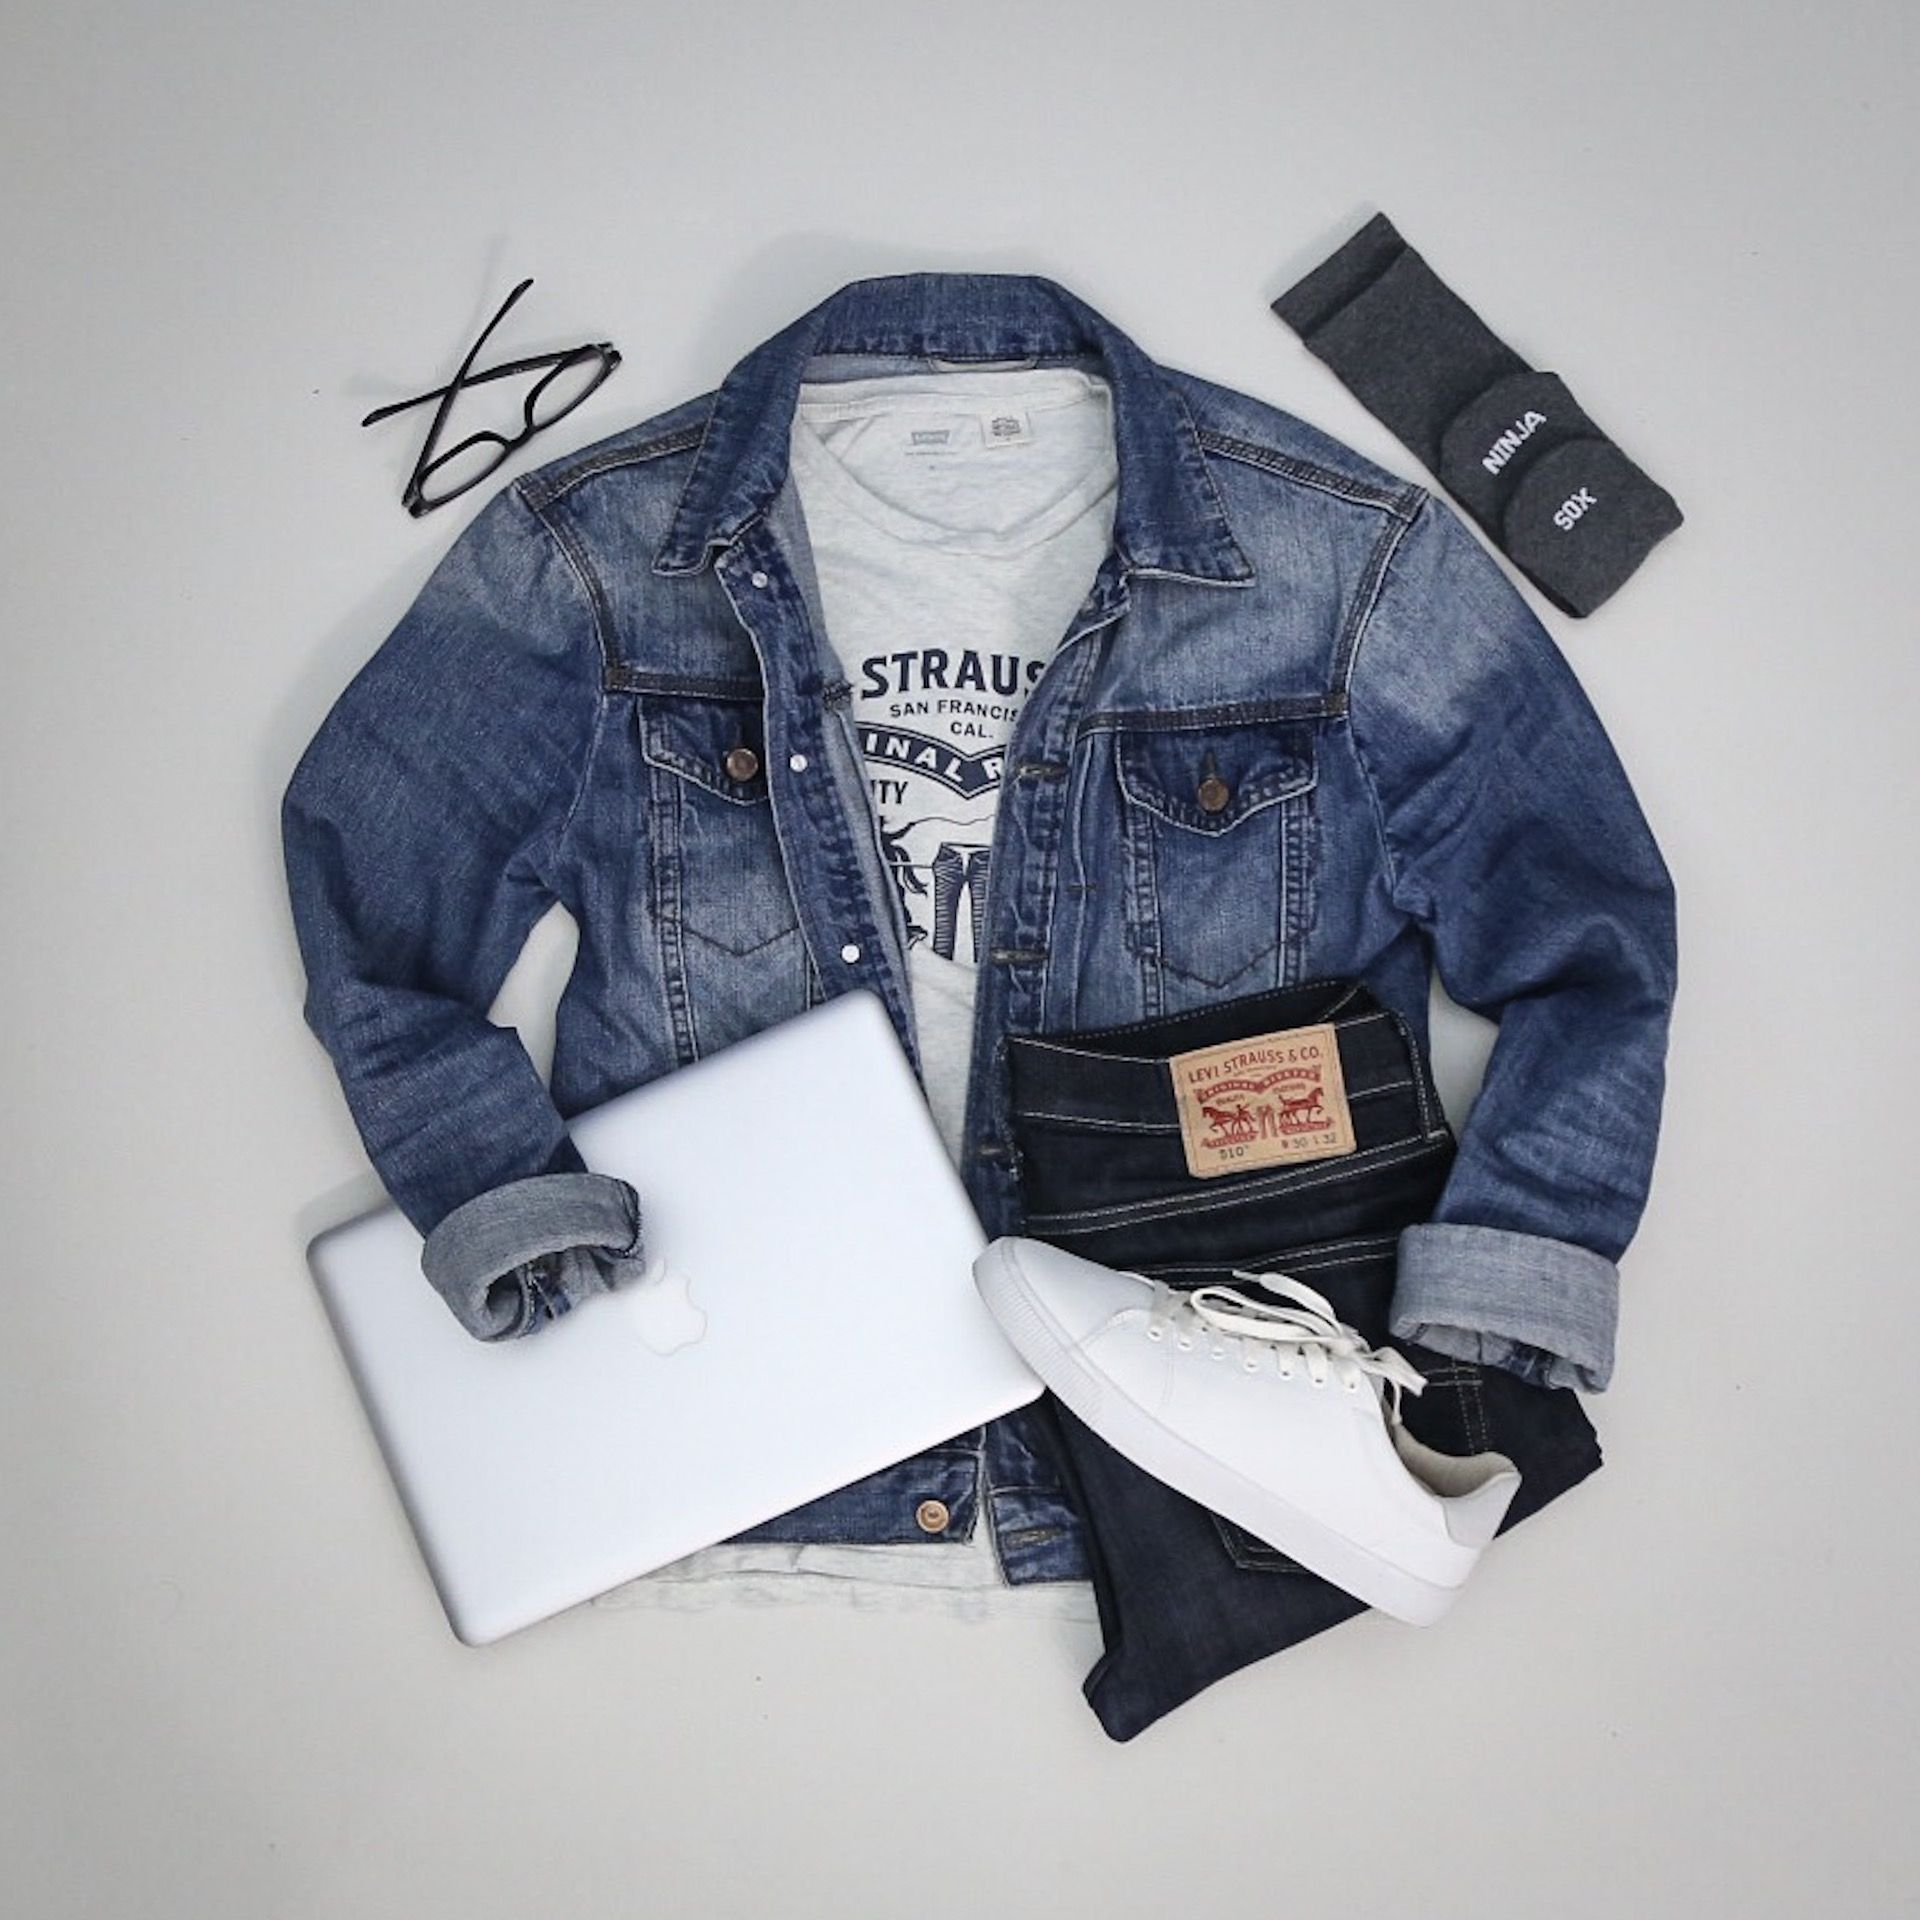 Guide gift for stylish guys